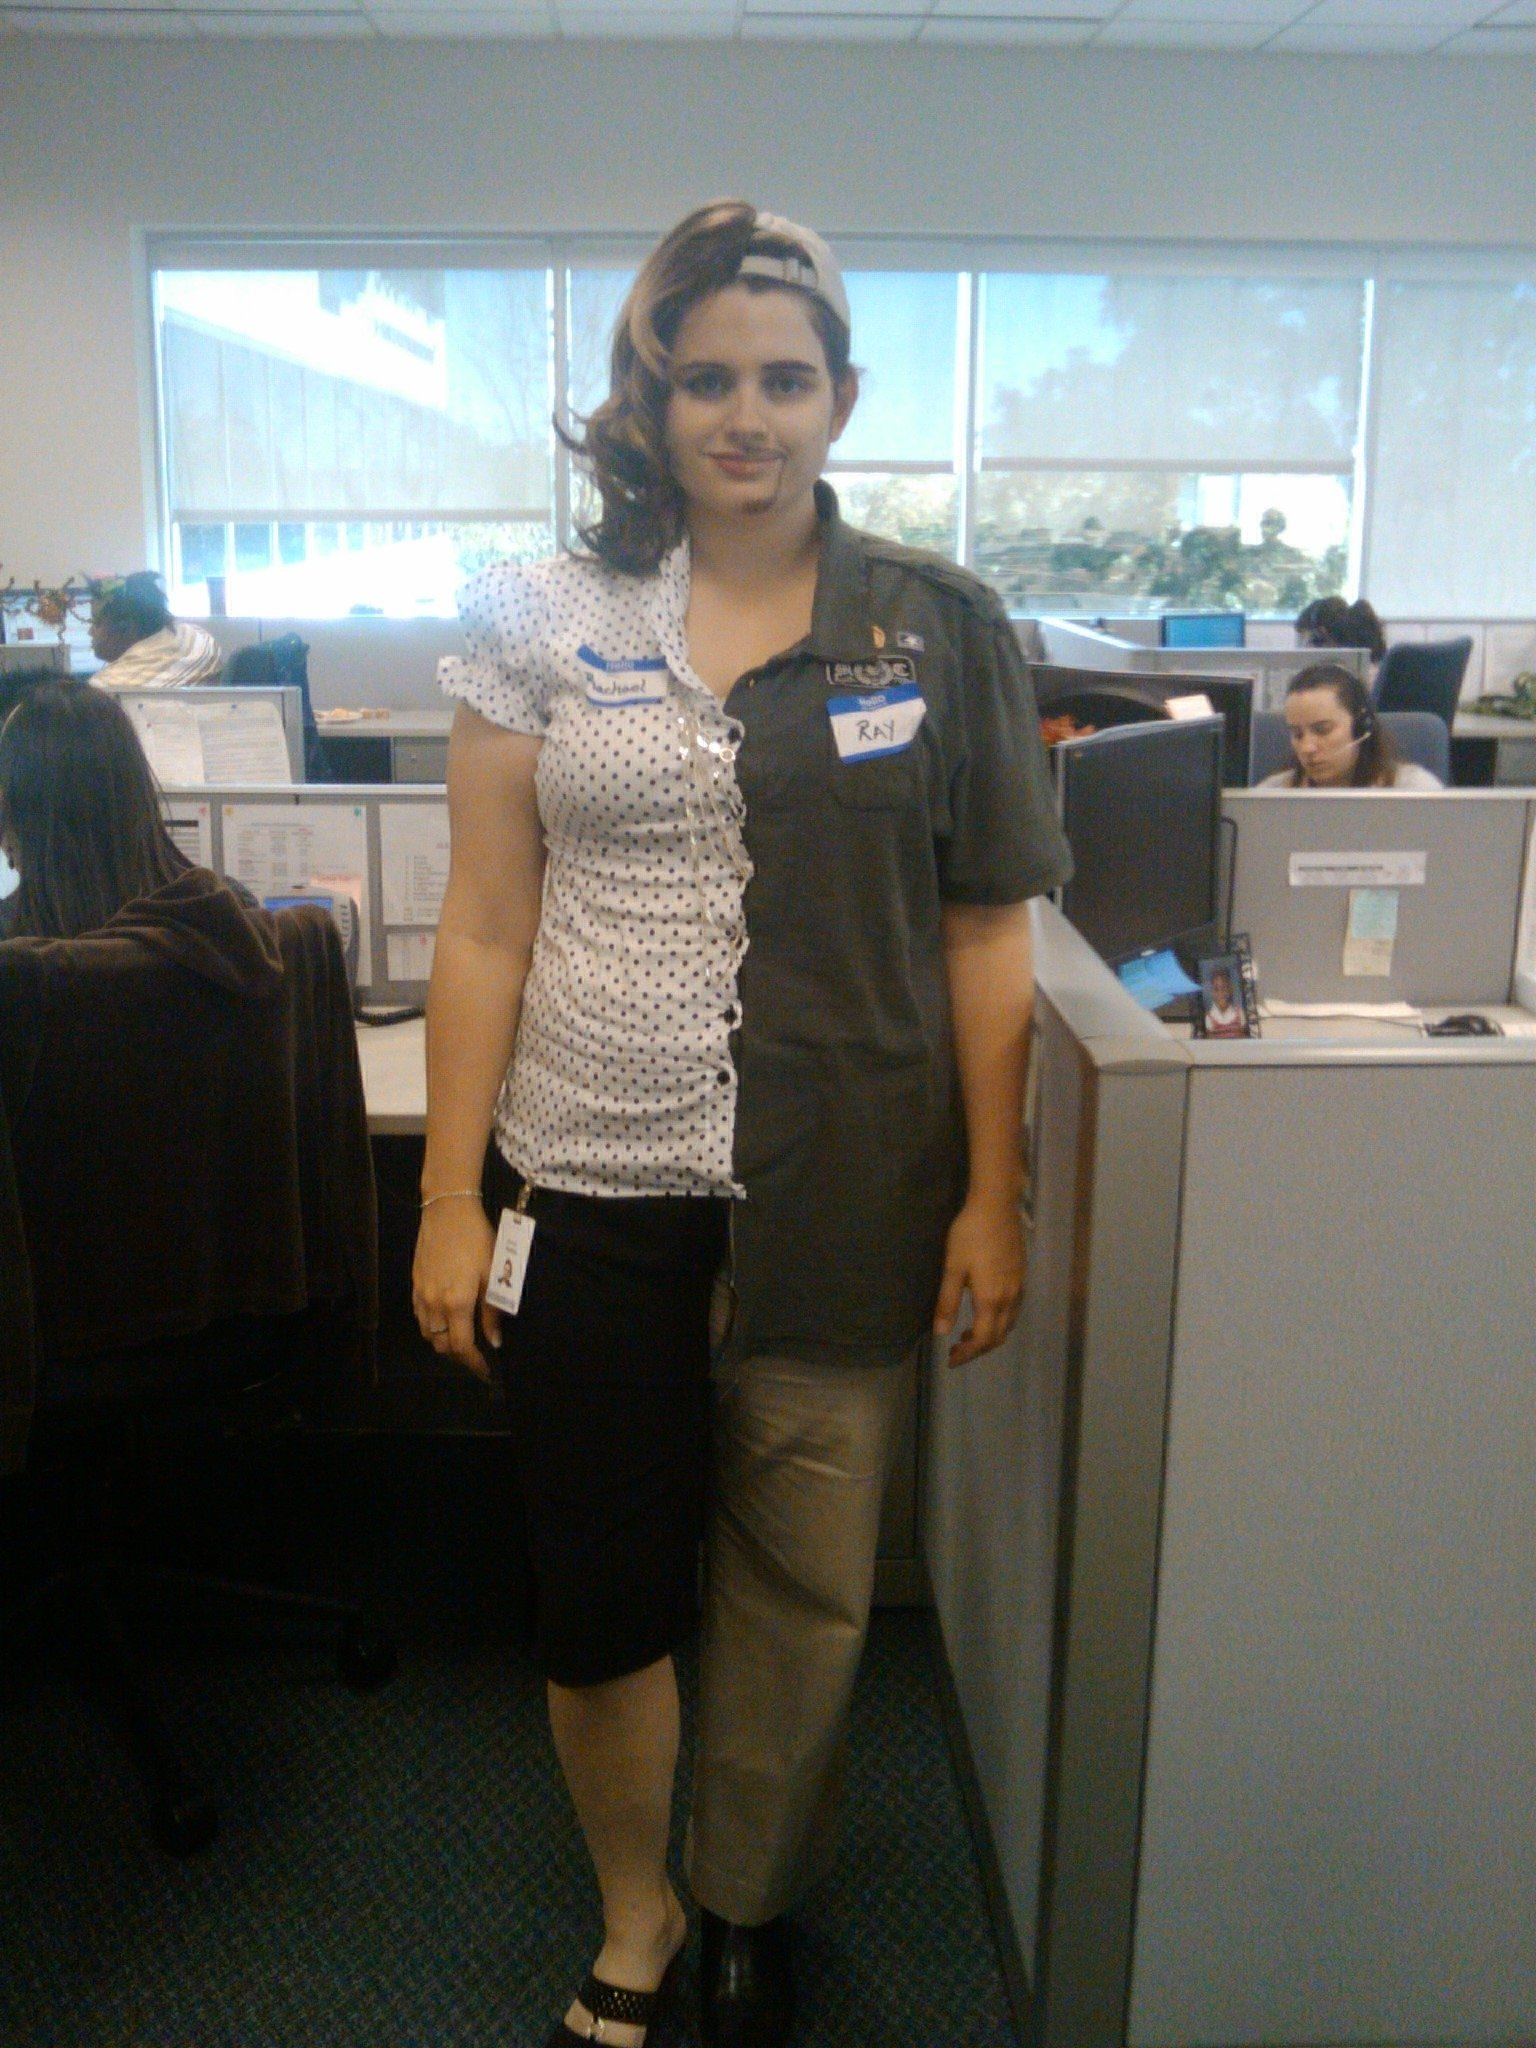 10 Unique Funny Guy Halloween Costume Ideas rachel ray halloween costume for last year costumes halloween 2020